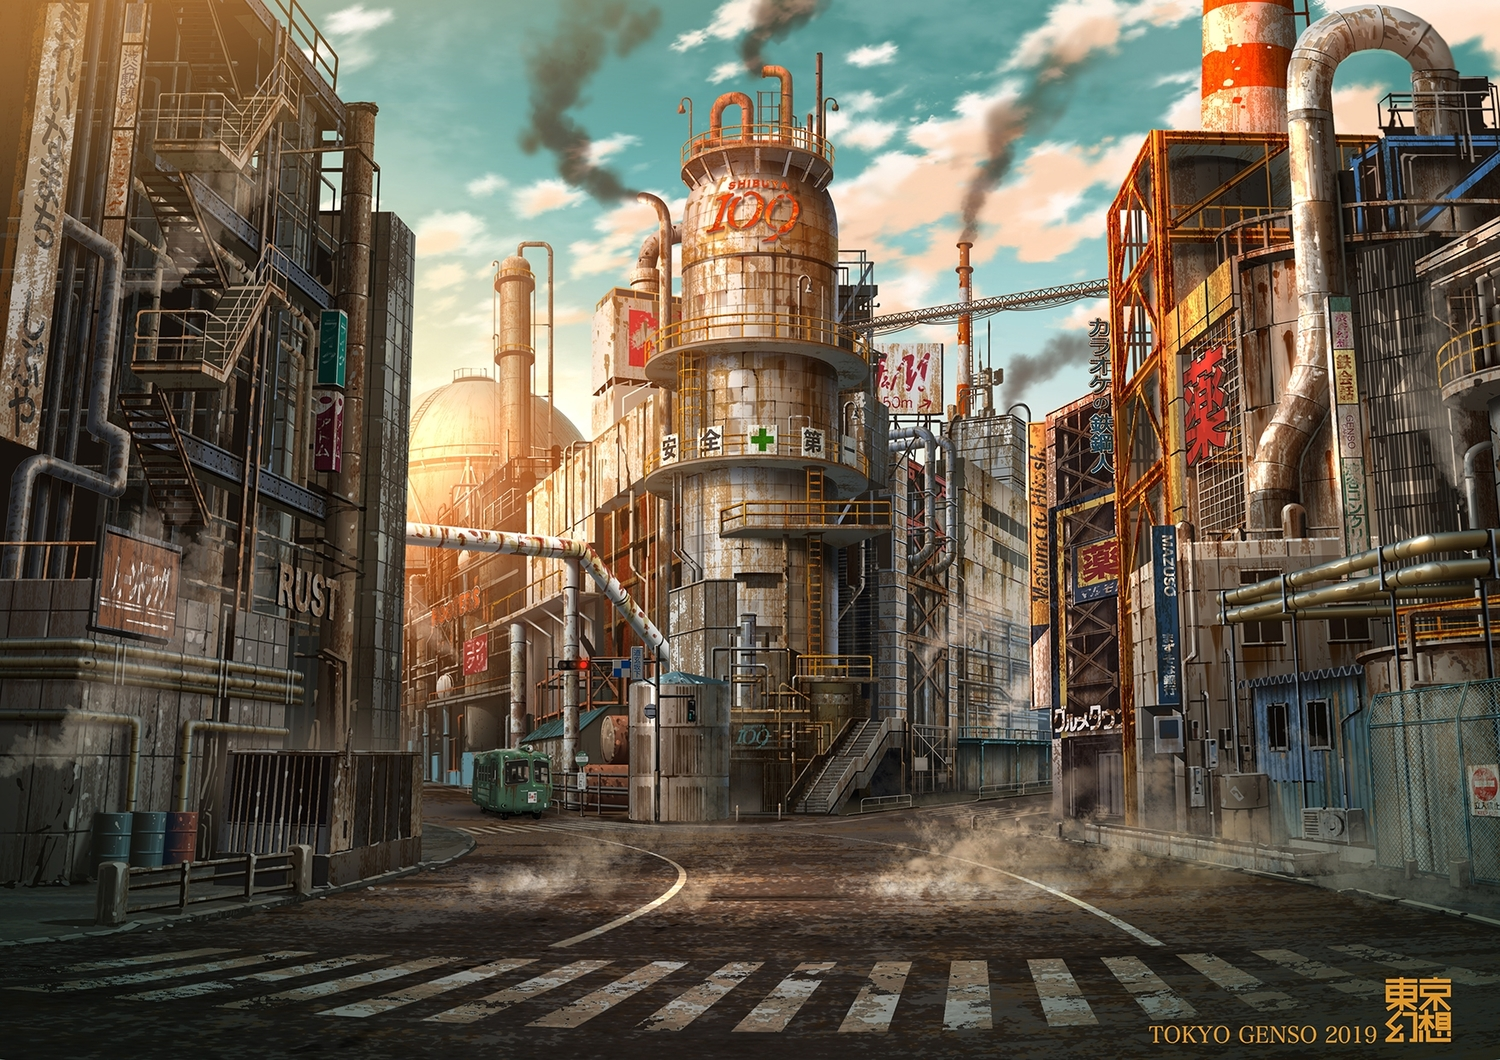 building car city clouds industrial nobody original ruins scenic sky tokyogenso translation_request watermark